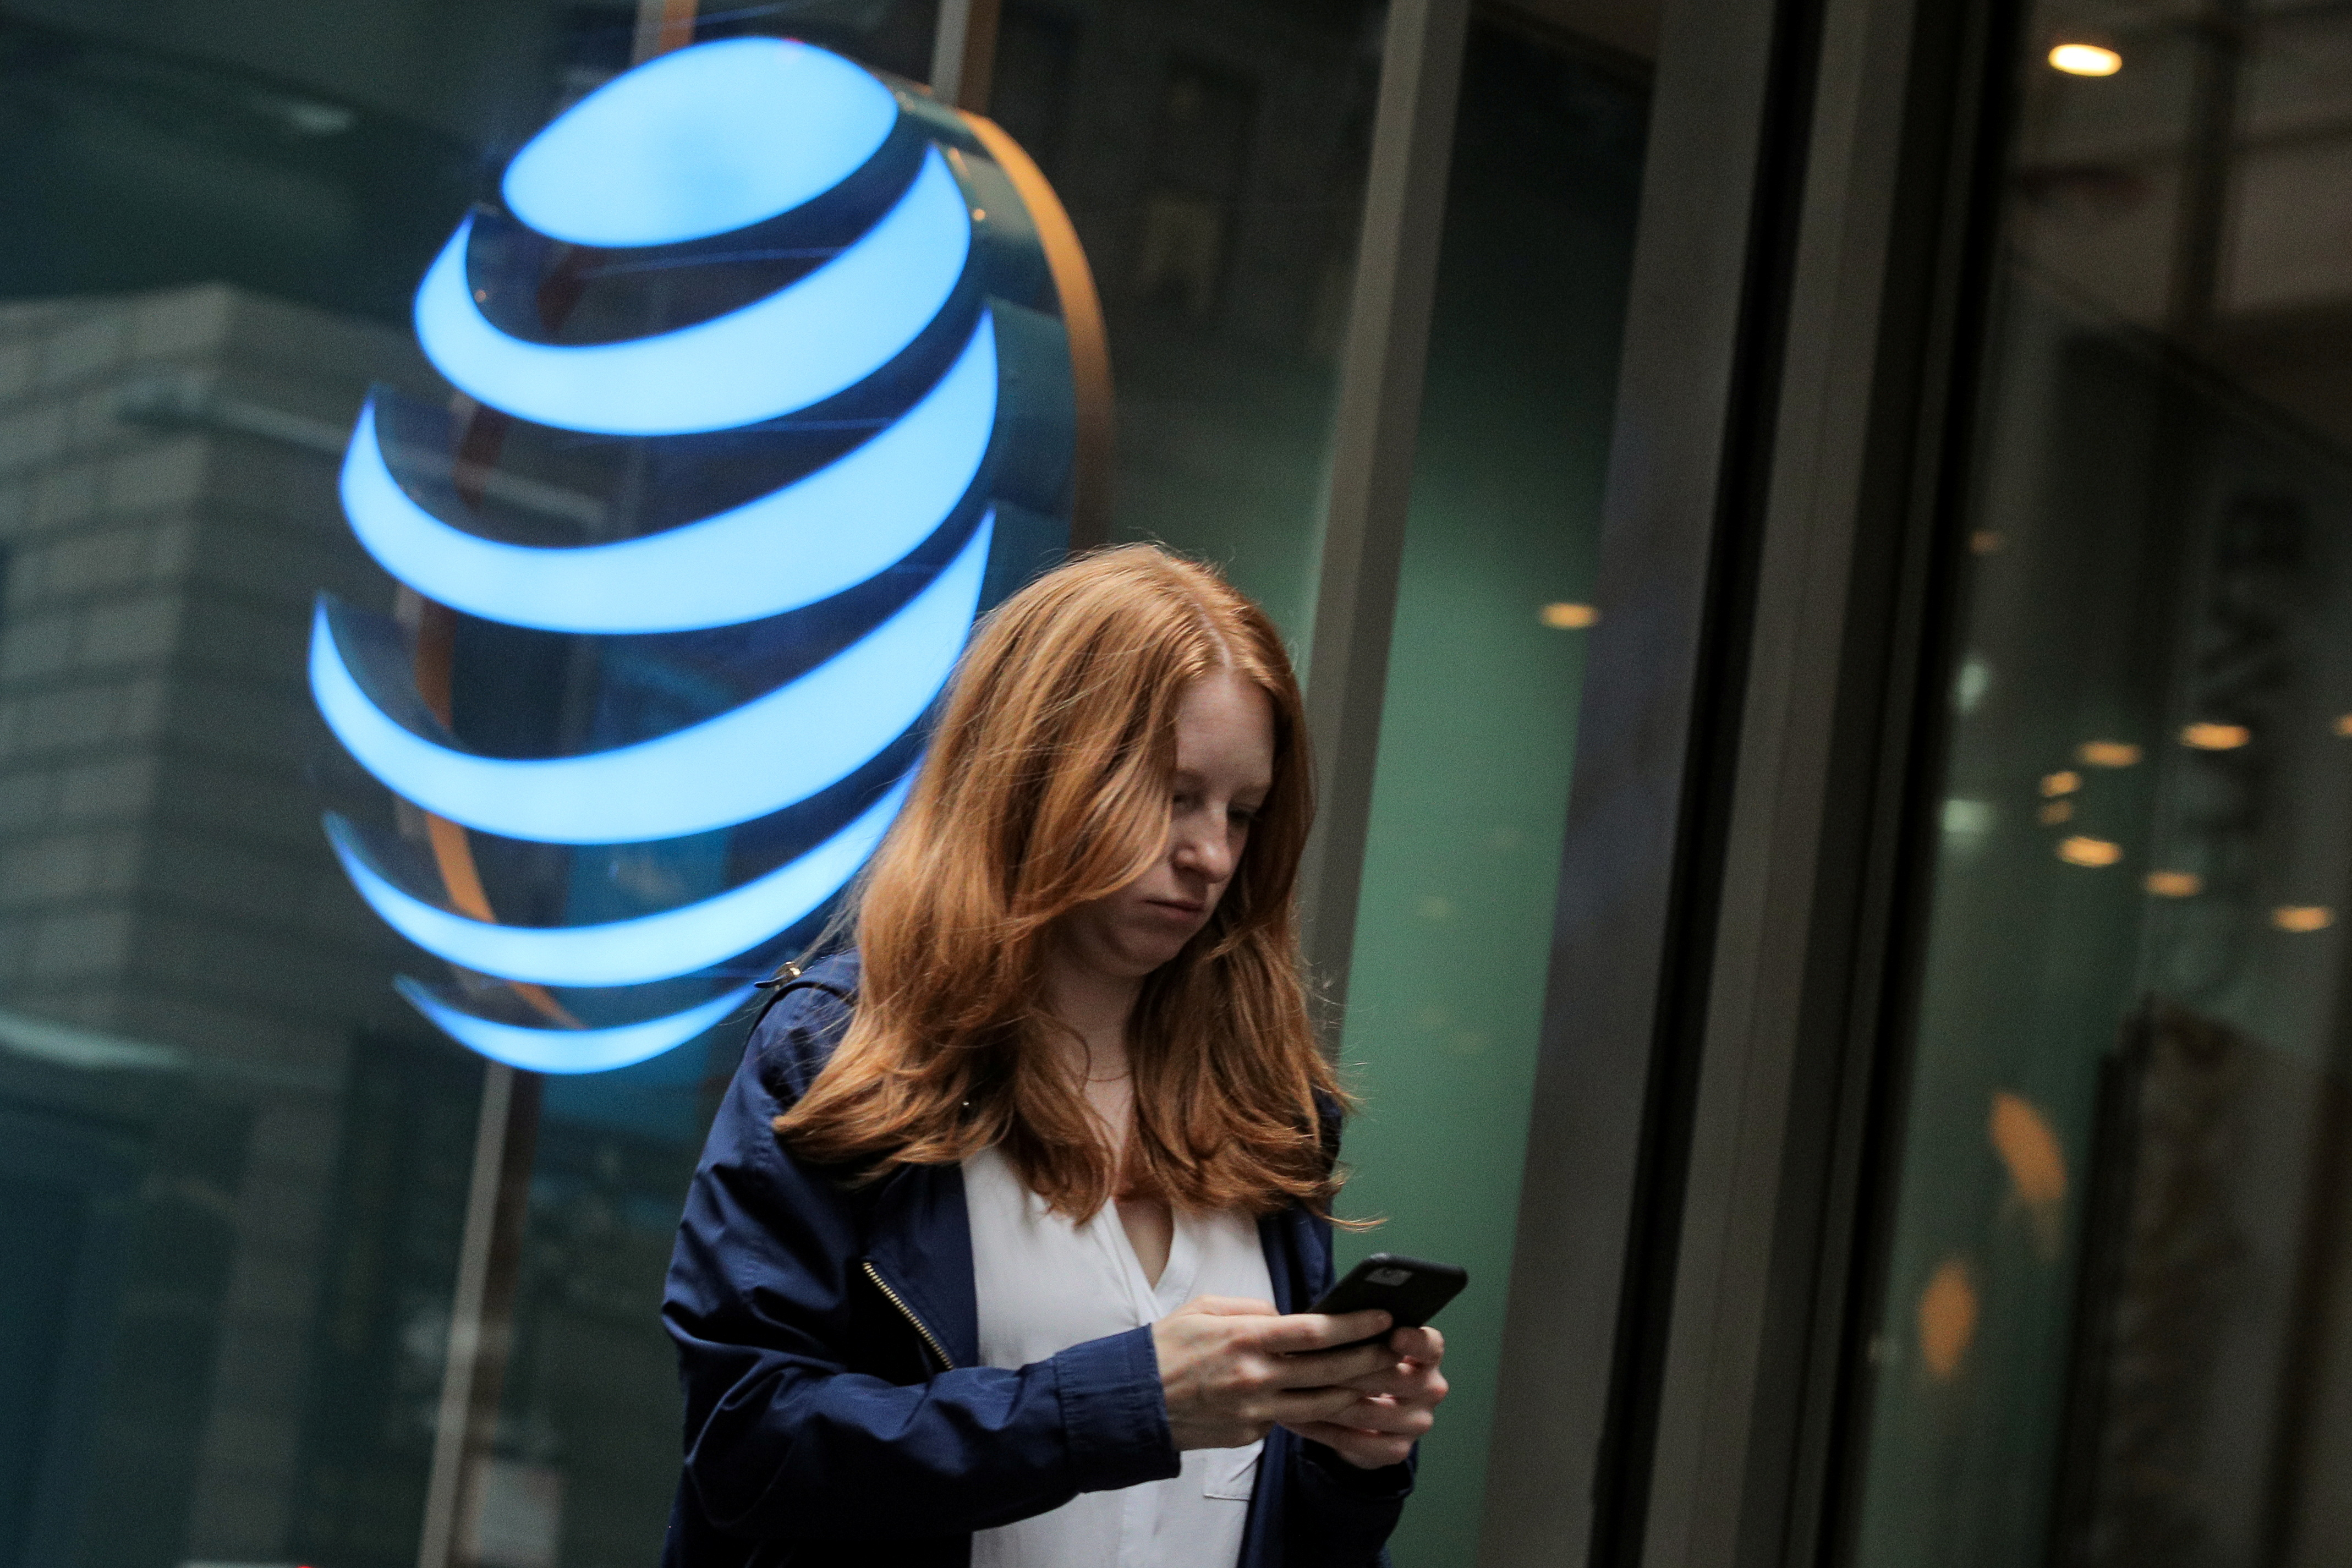 A woman uses her phone as she passes by an AT&T store on Wall St. in New York, U.S., June 19, 2019. REUTERS/Brendan McDermid/File Photo